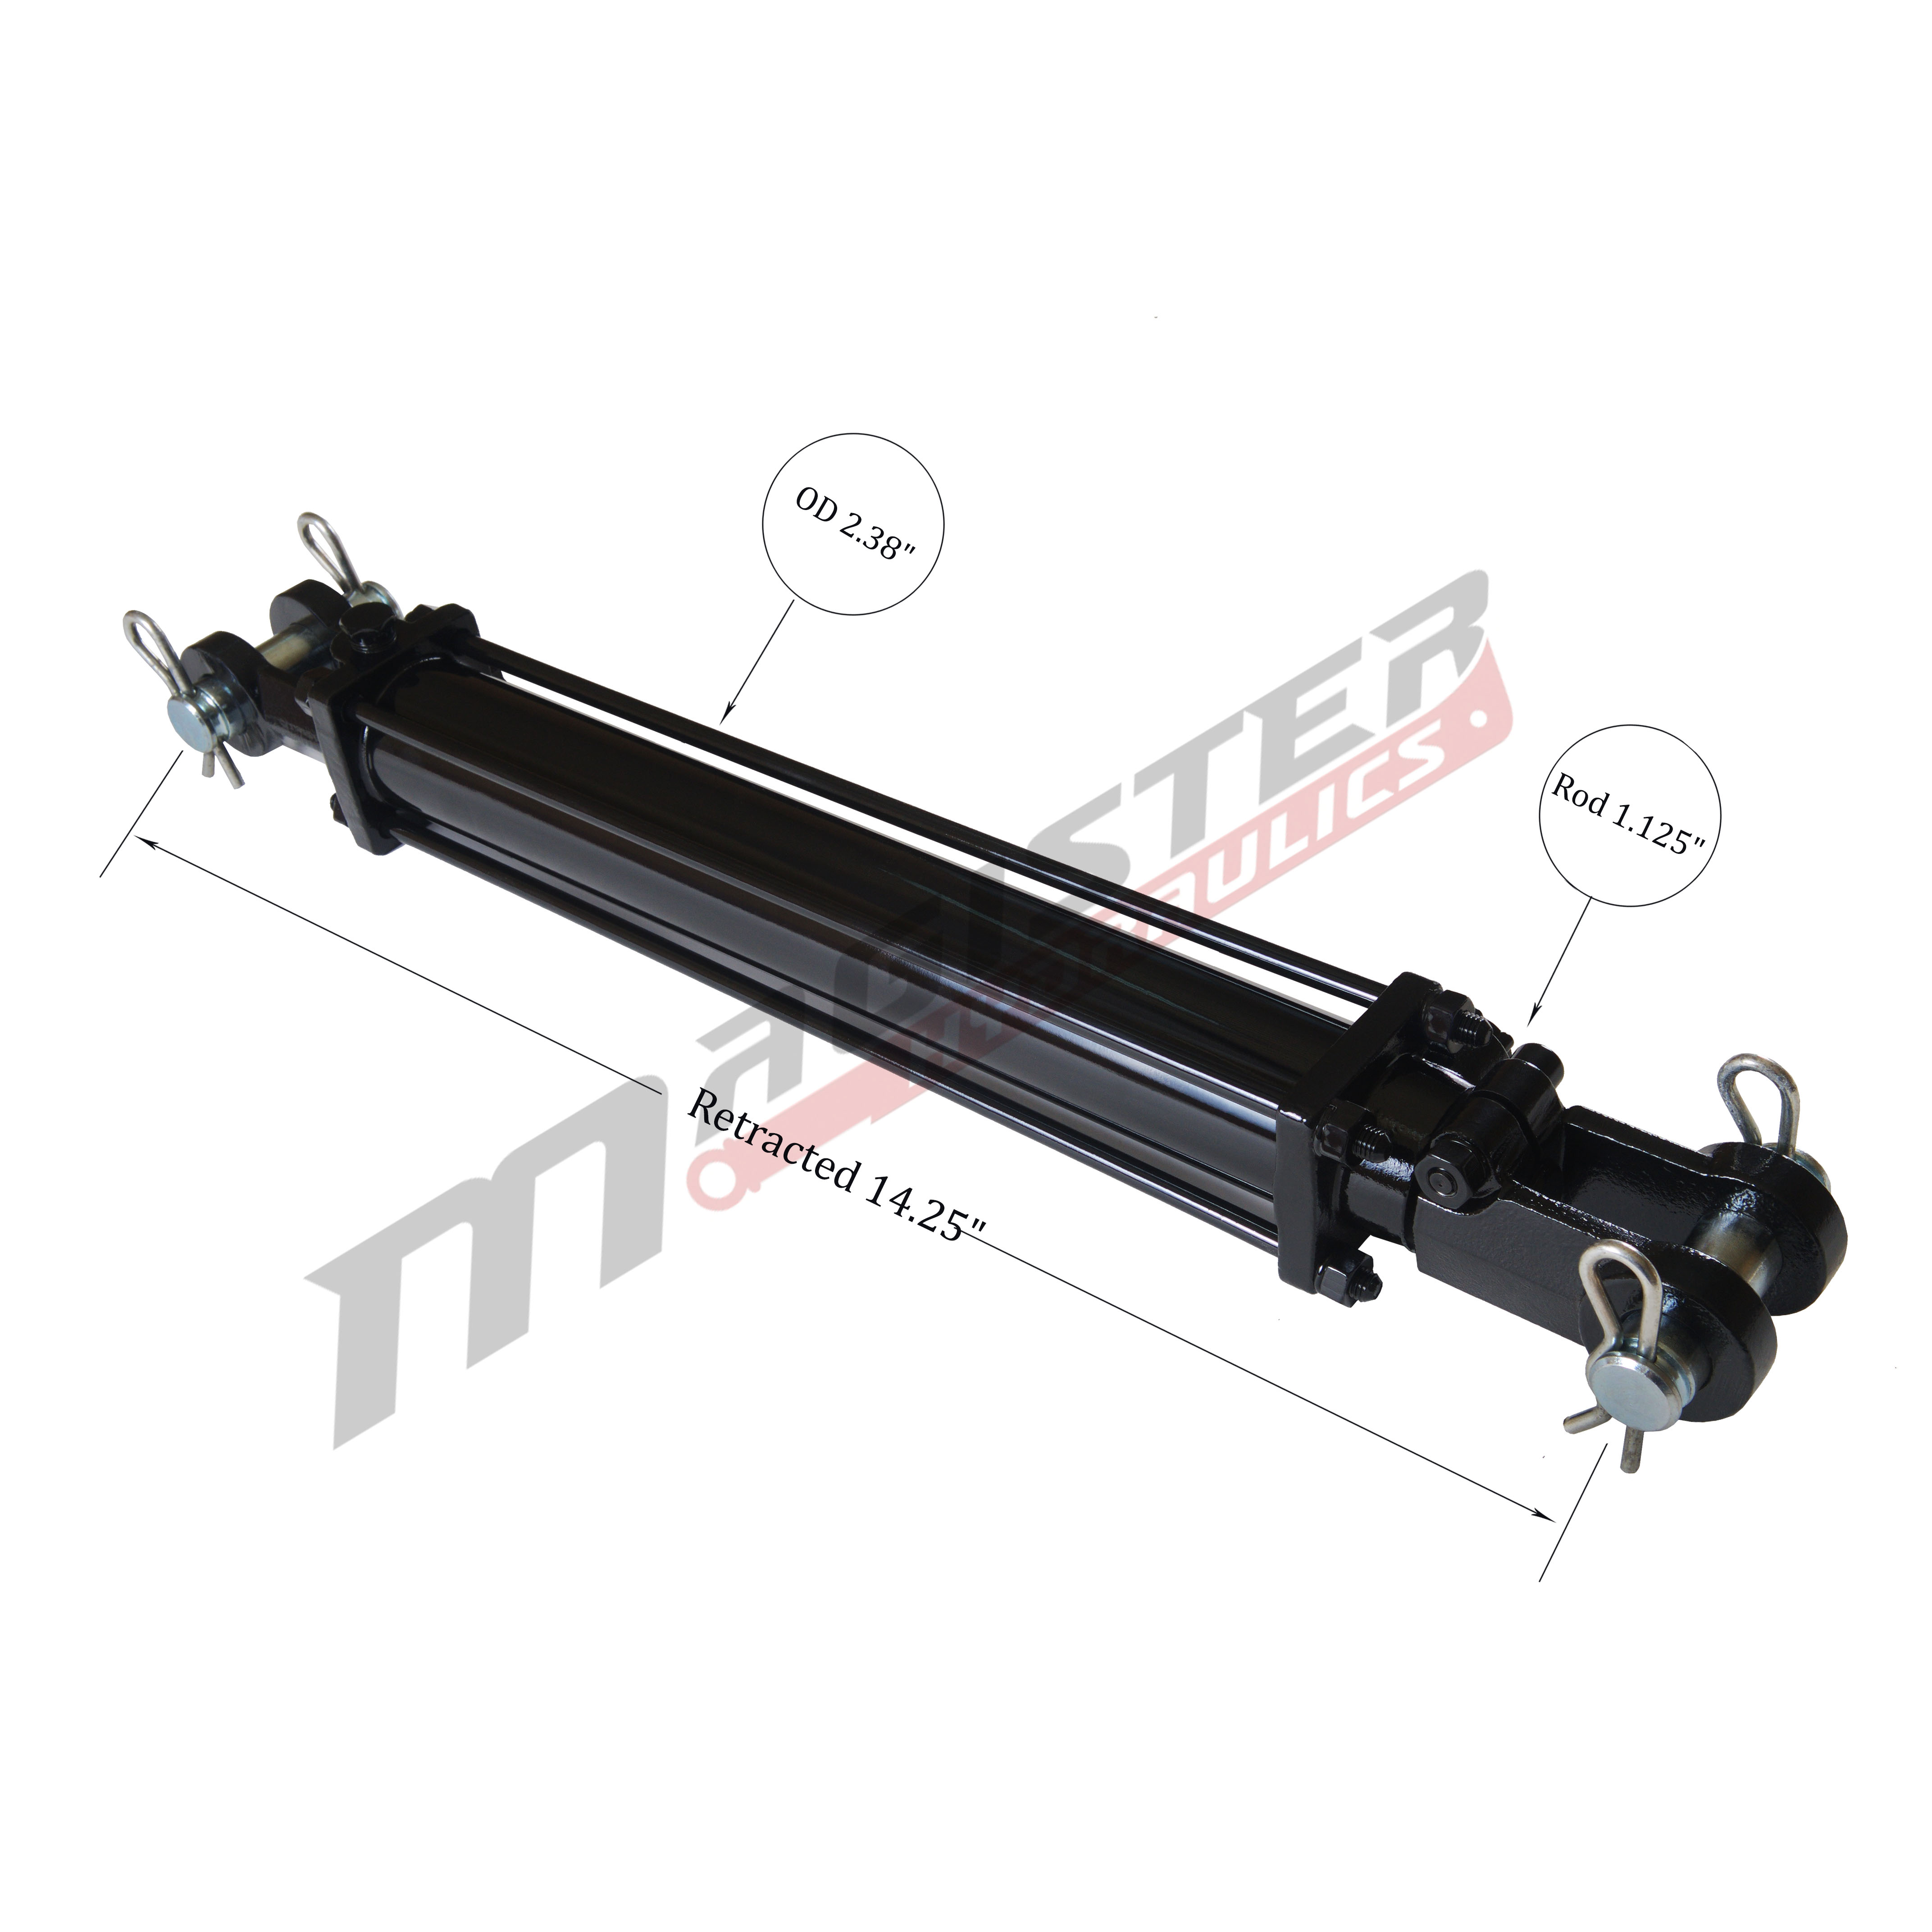 2 bore x 4 stroke hydraulic cylinder, tie rod double acting cylinder | Magister Hydraulics